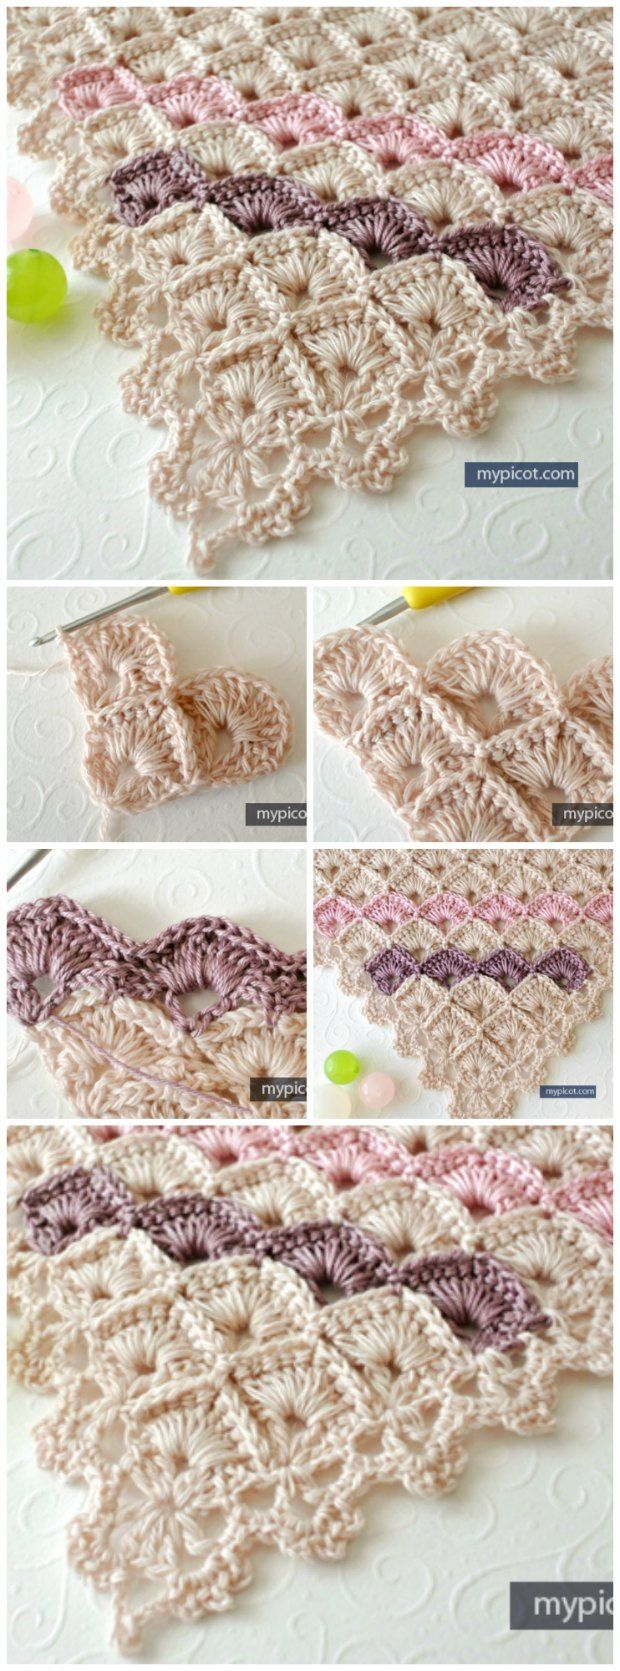 Crochet Triangle Shawl Box Stitch Pattern - Free Tutorial | tejidos ...